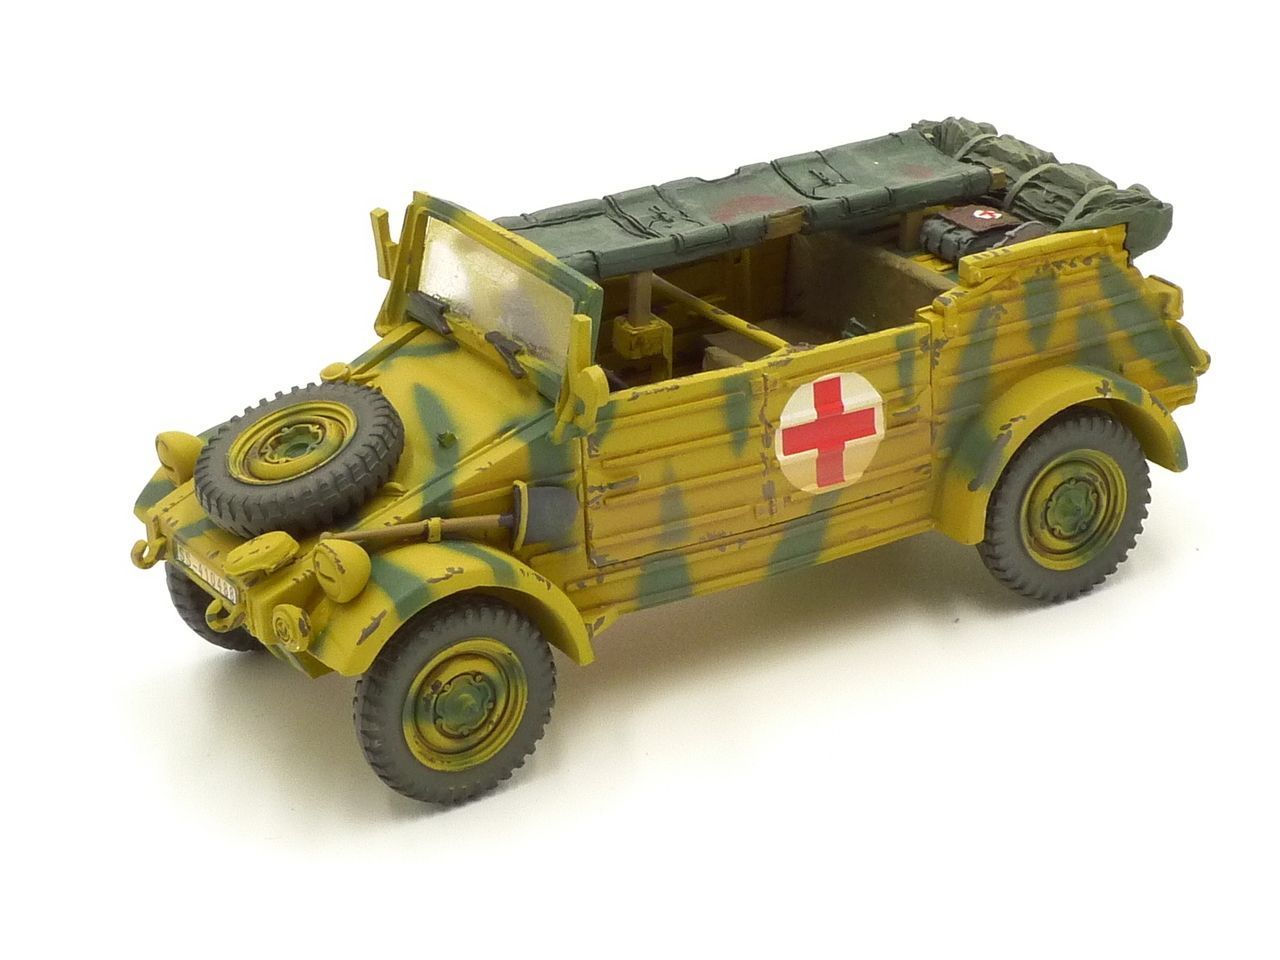 Thomas Gunn SS023 Miniatures Medical Kubelwagen A #miniaturemedical Thomas Gunn SS023 Miniatures Medical Kubelwagen A #miniaturemedical Thomas Gunn SS023 Miniatures Medical Kubelwagen A #miniaturemedical Thomas Gunn SS023 Miniatures Medical Kubelwagen A #miniaturemedical